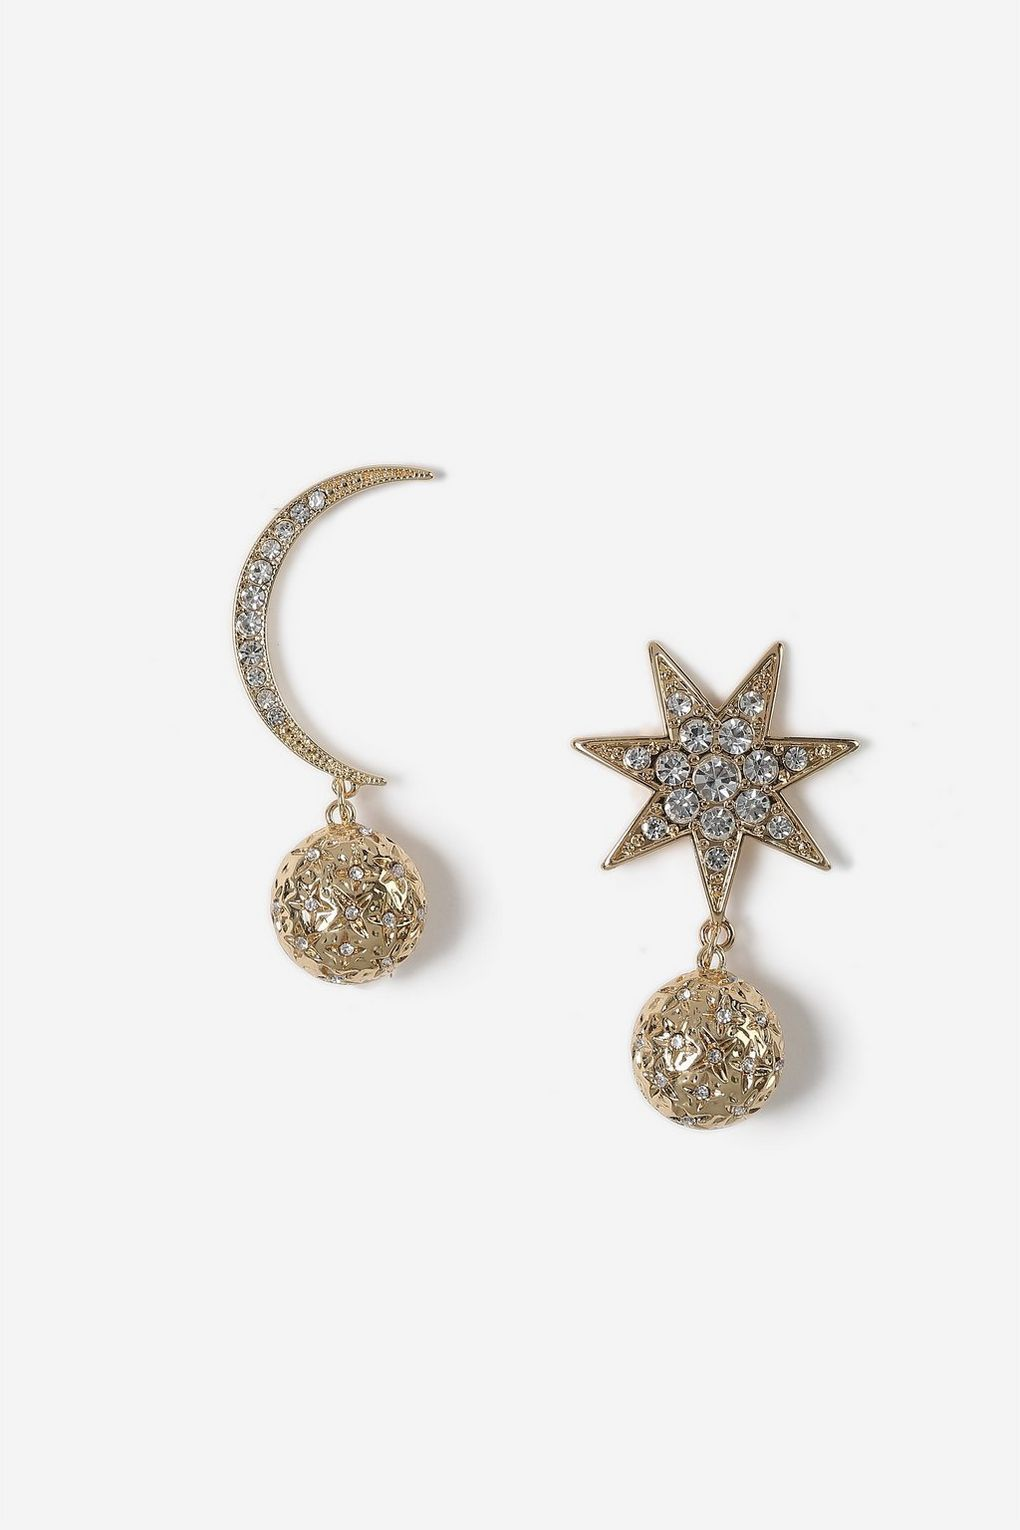 7244cc93a Pin by Margaret on Circus Wardrobe in 2019   Clip on earrings ...